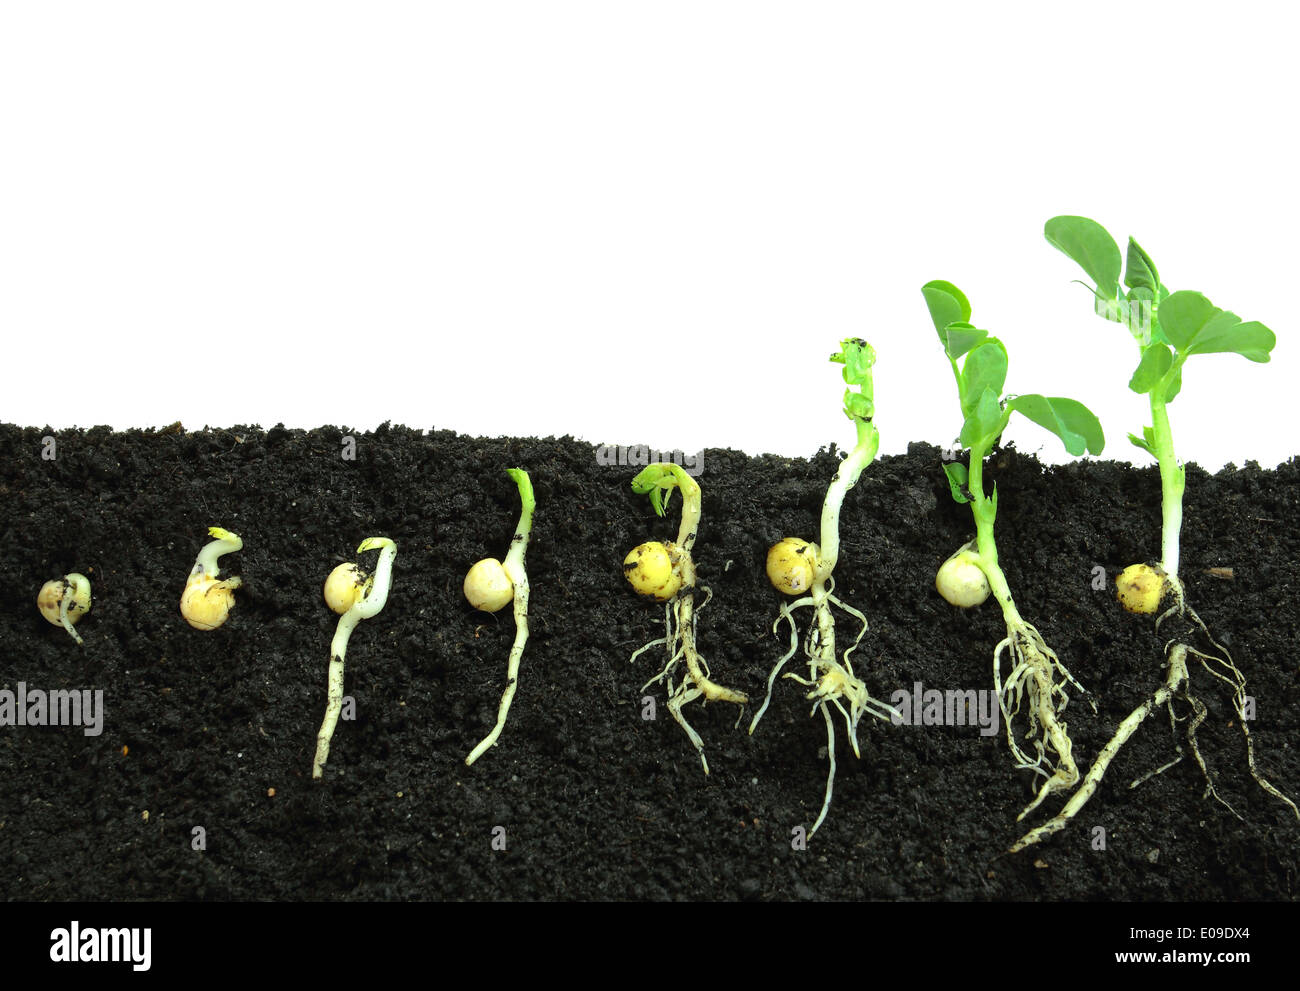 germinated peas report 2018-10-09 the differences in photosynthesis and respiration in germinating and non-germinating peas may help us explain the adaptations plants have made to be successful organisms many plants generate seeds to produce their offspring.